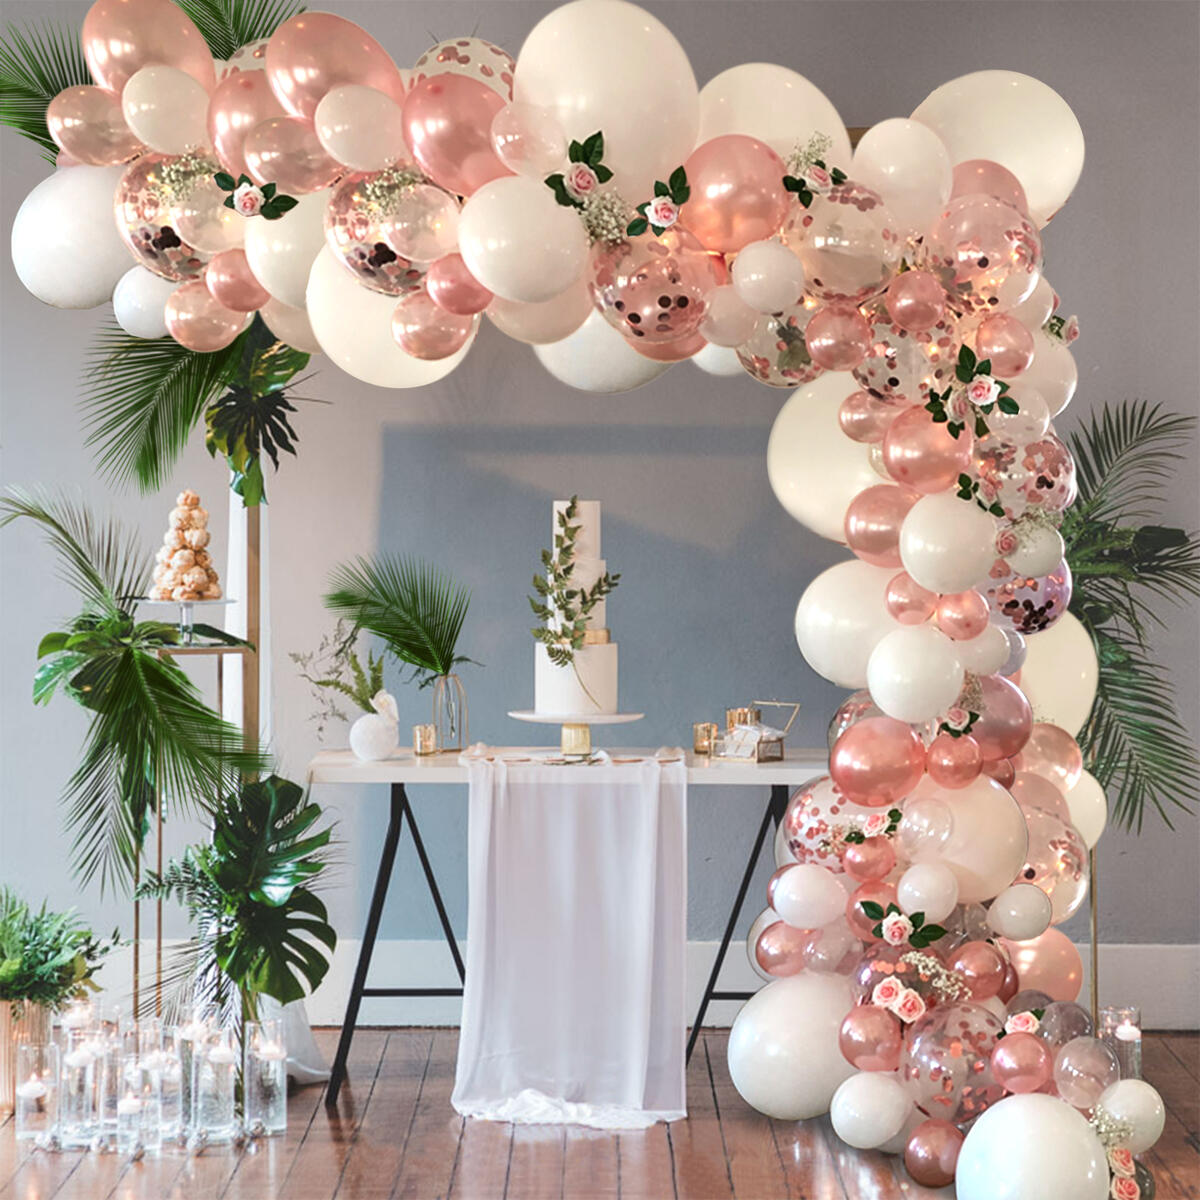 Balloon Arch Garland Kit Rose Gold 16' | 100+ Kit | Rose Gold Confetti, White, Rose Gold & Clear Premium Latex Balloons + Accessories | Bridal Shower, Baby Shower, Wedding, Bachelorette Party